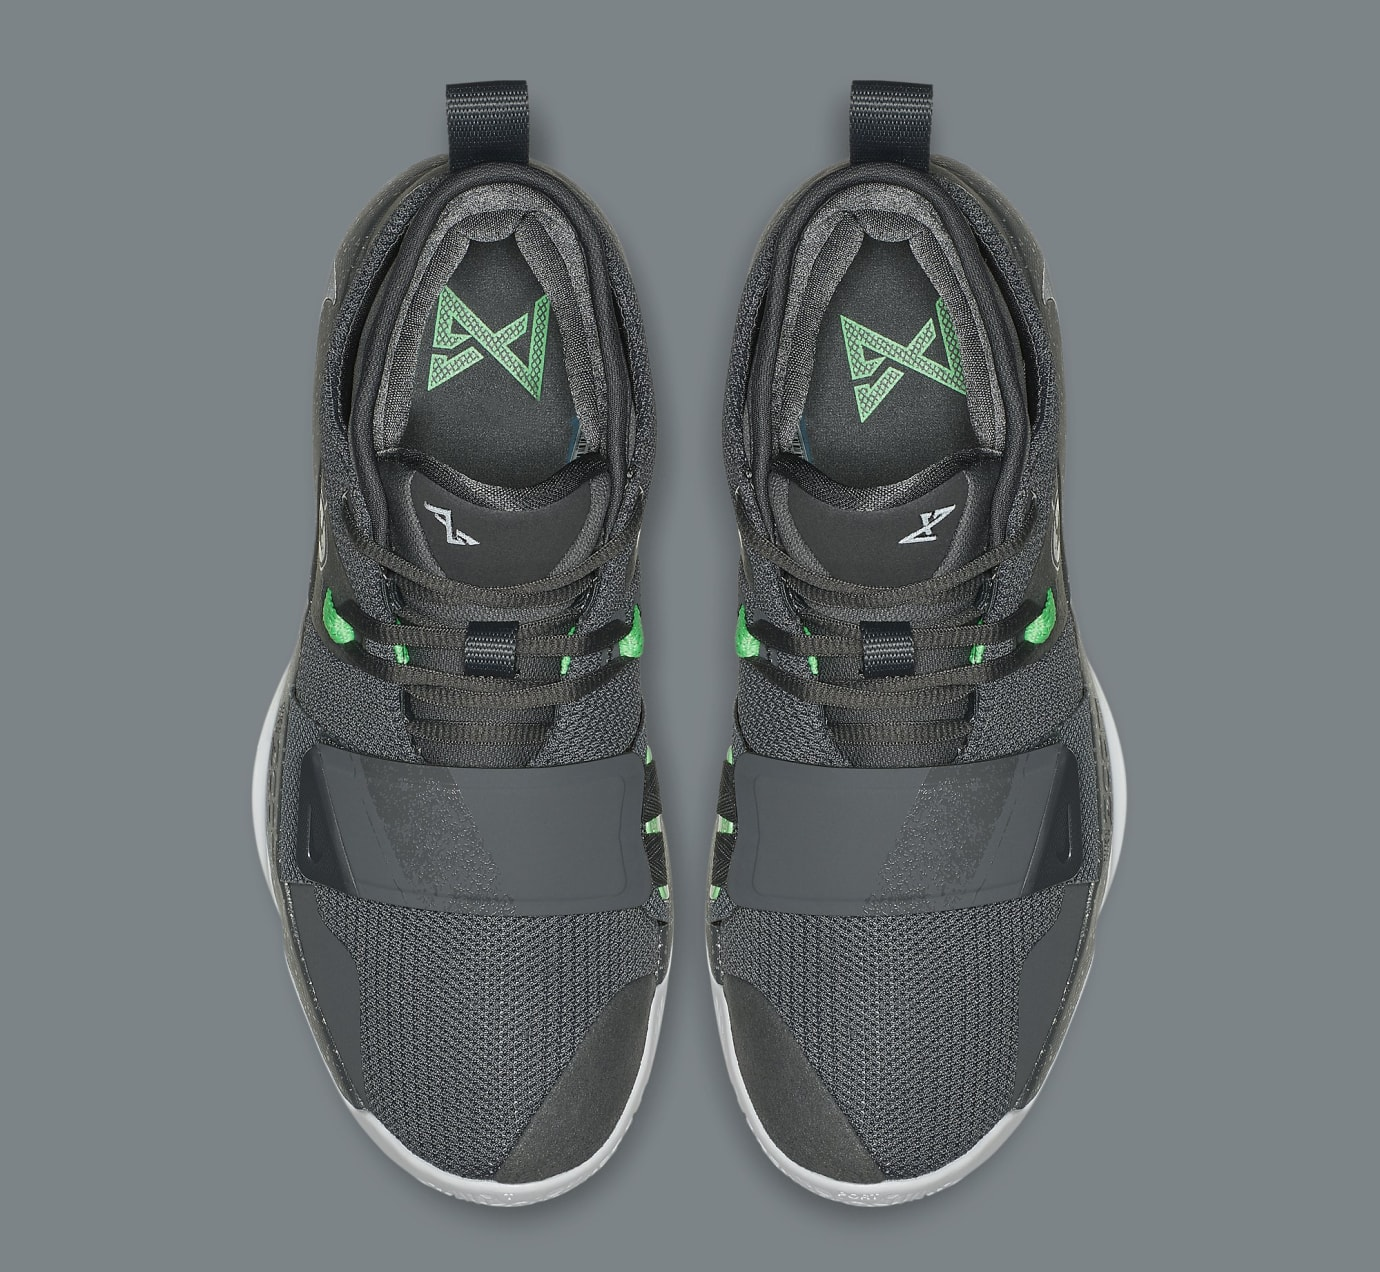 info for 0efdc 0bf15 Nike PG 2.5 Grey Green Release Date BQ8452-007 | Sole Collector